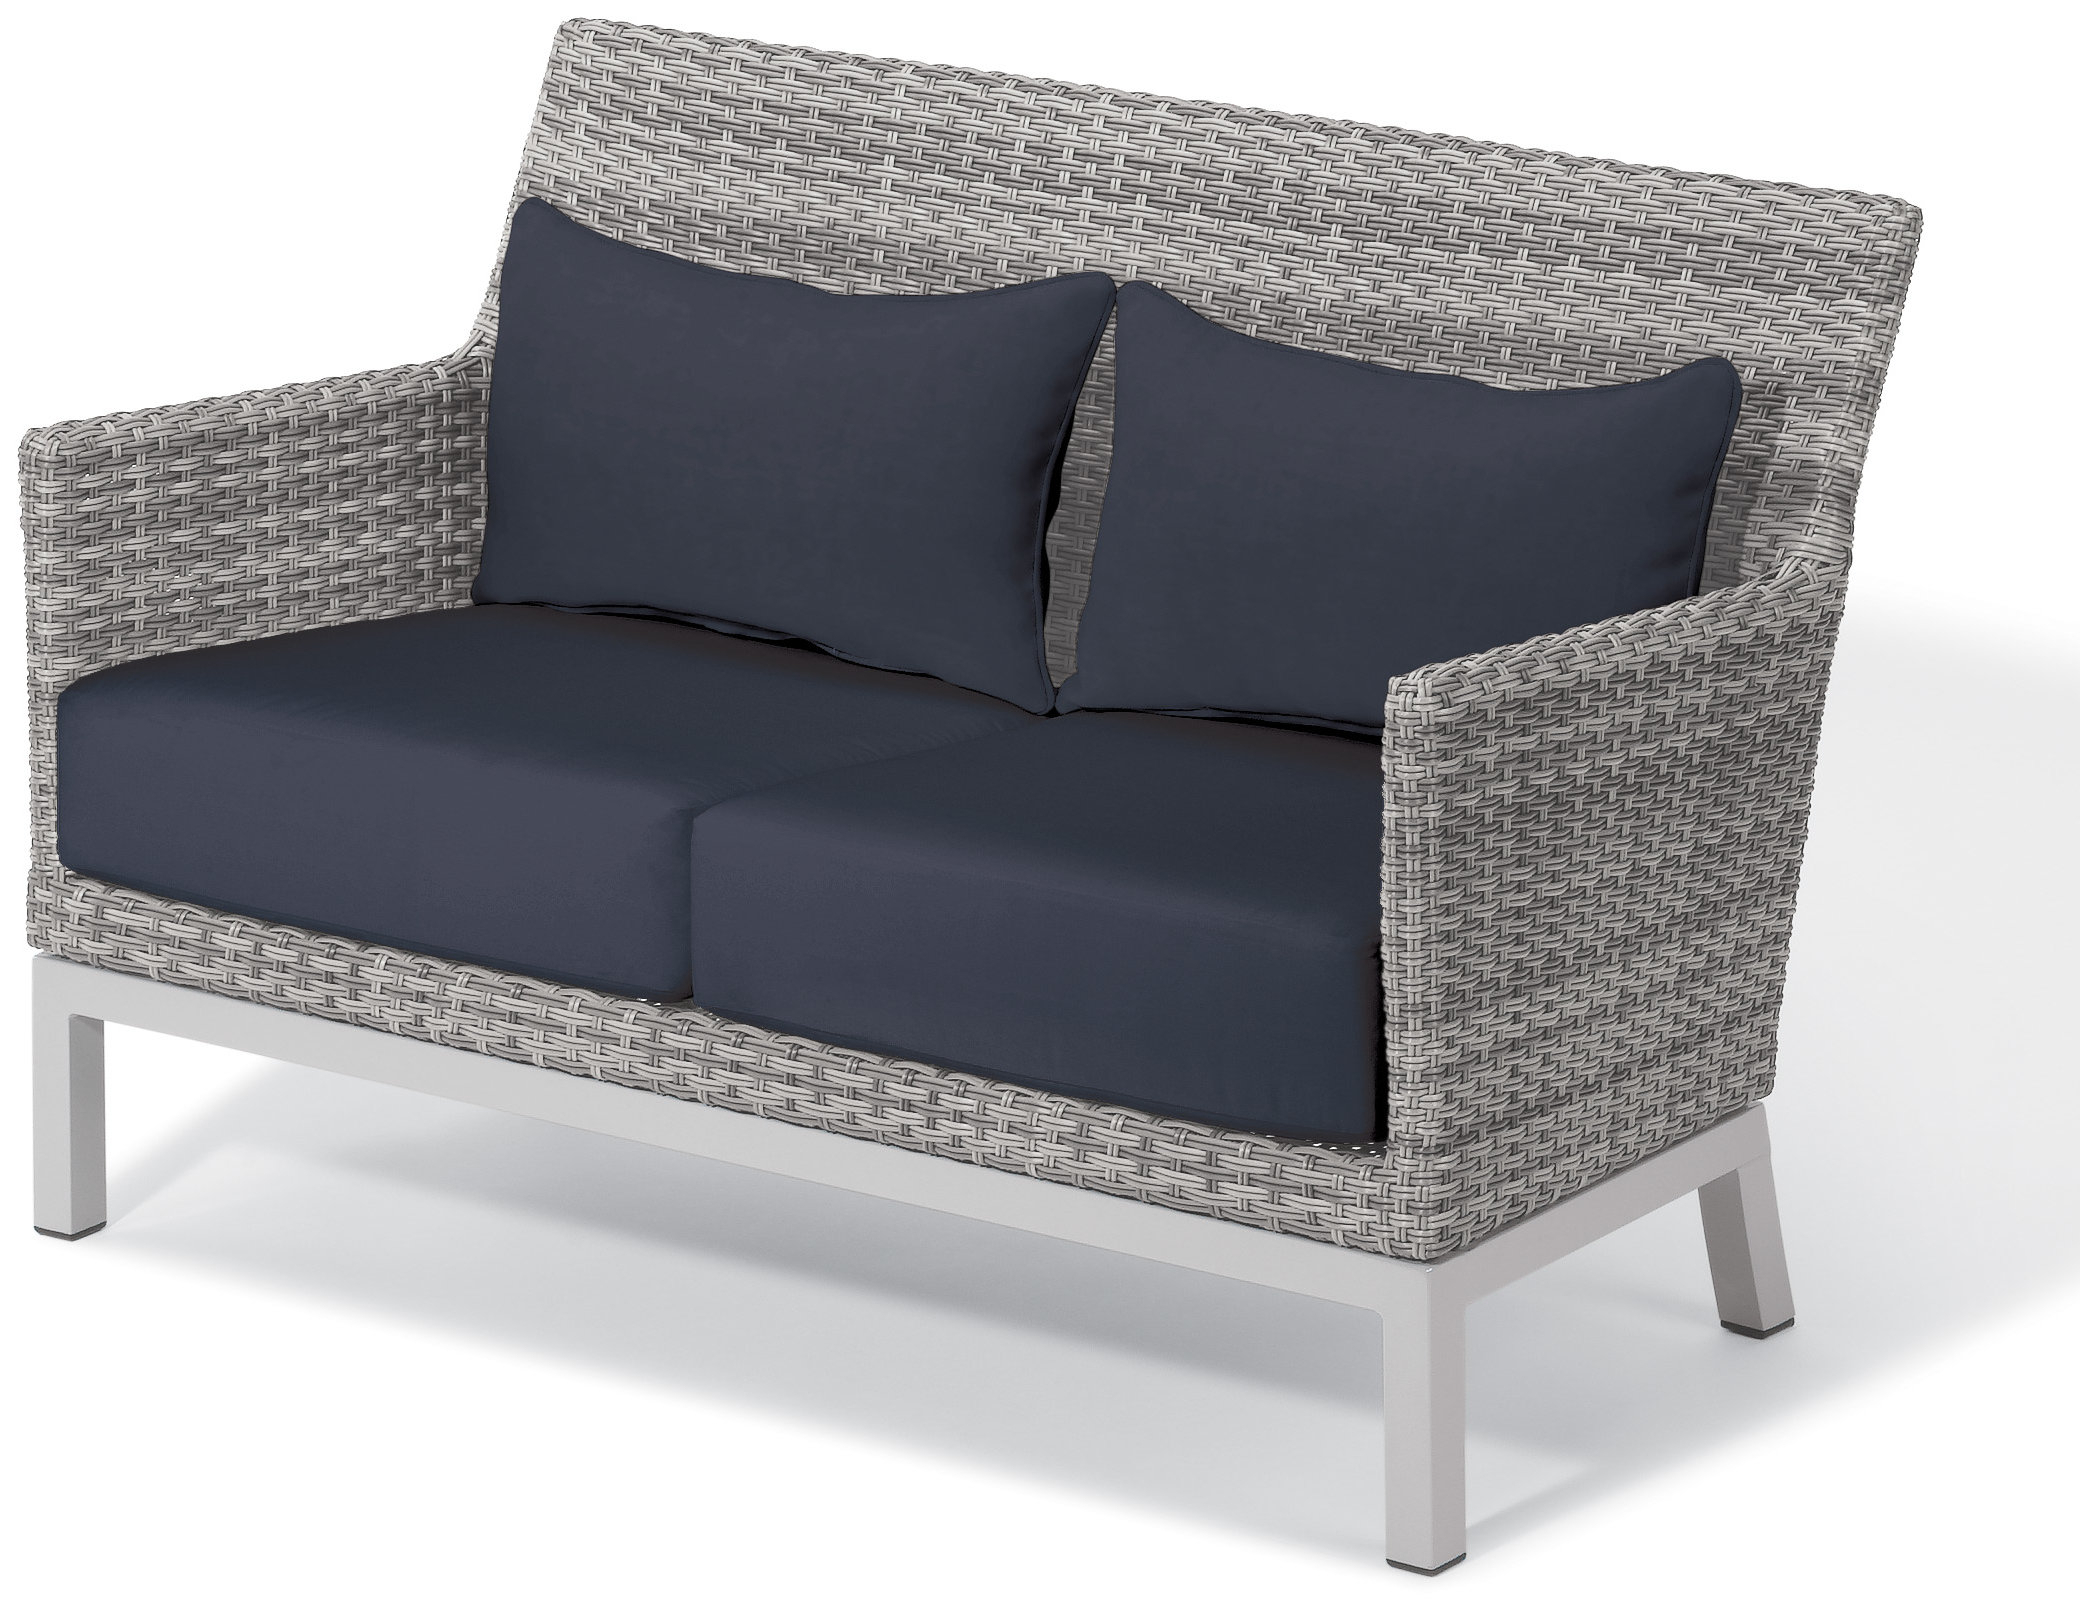 Mendelson Loveseats With Cushion Regarding Favorite Saleem Loveseat With Cushions (View 10 of 20)